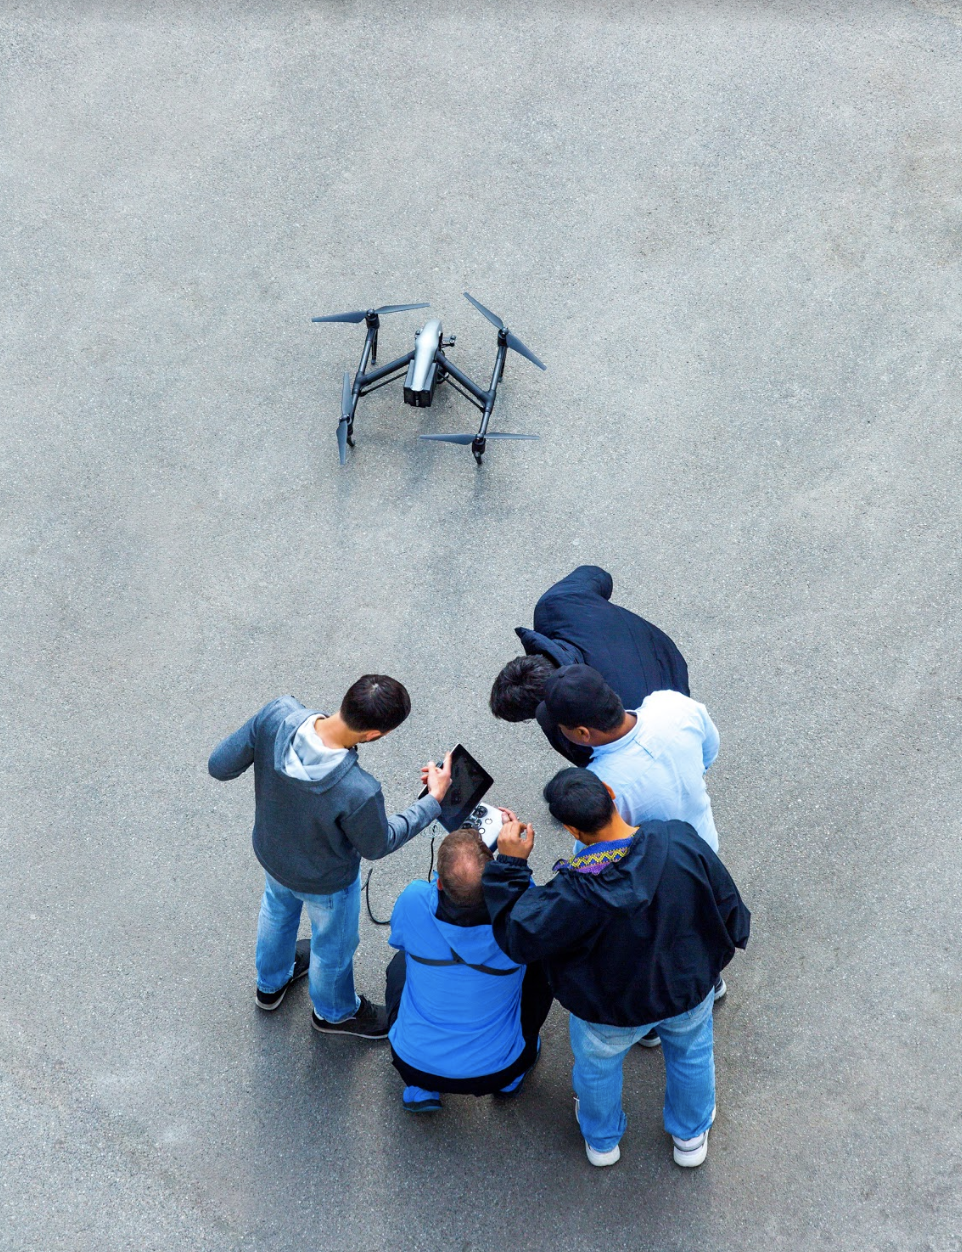 Drones in security industry